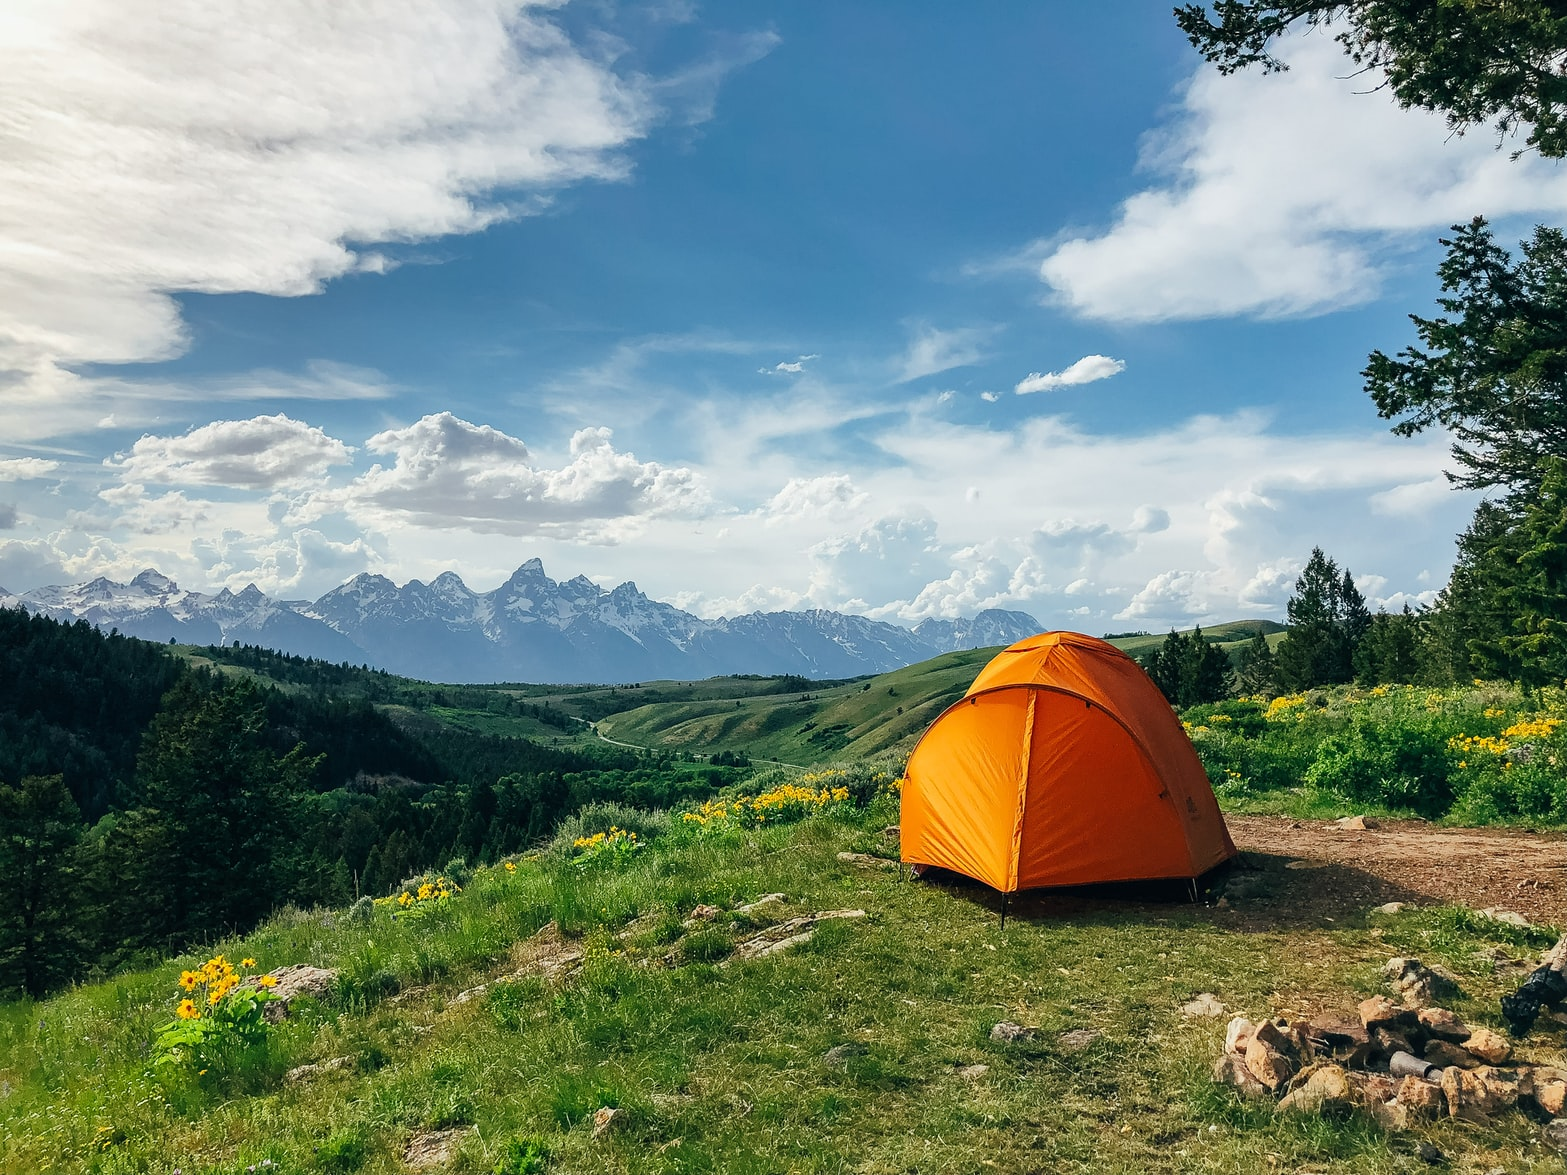 TRANSFORMATION OF CAMPING INTO GLAMPING – TRENDS AND PERSPECTIVES